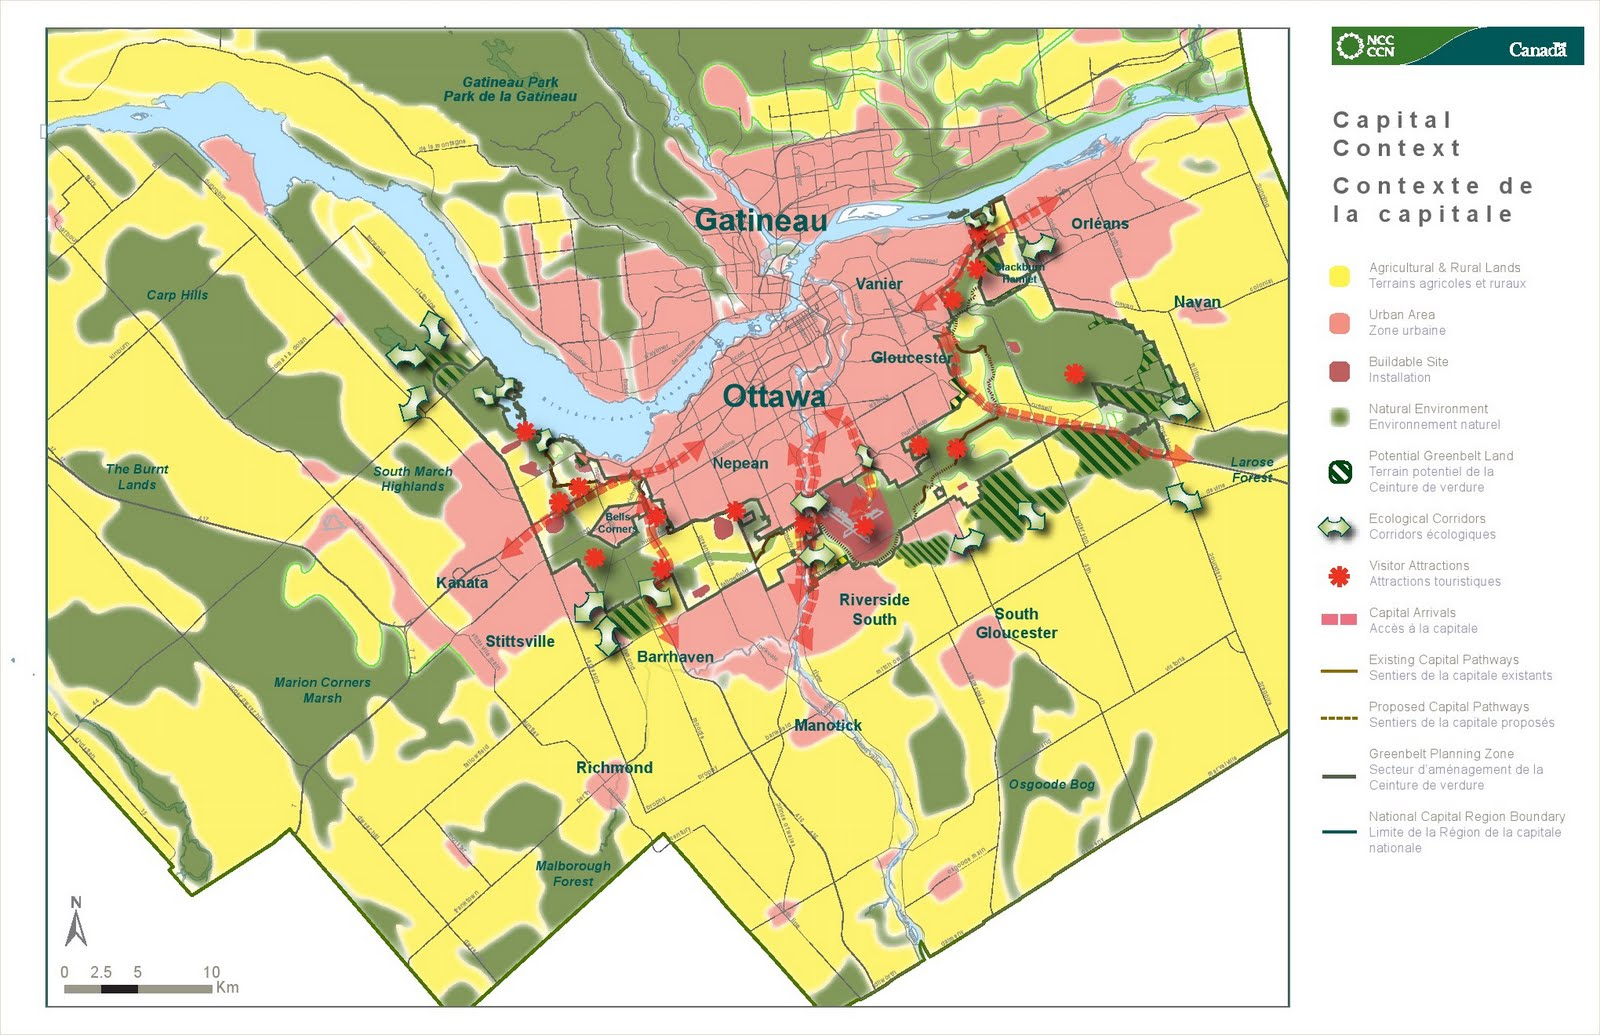 south march highlands and carp hills ncc role in protecting natural environment lands beyond the greenbelt